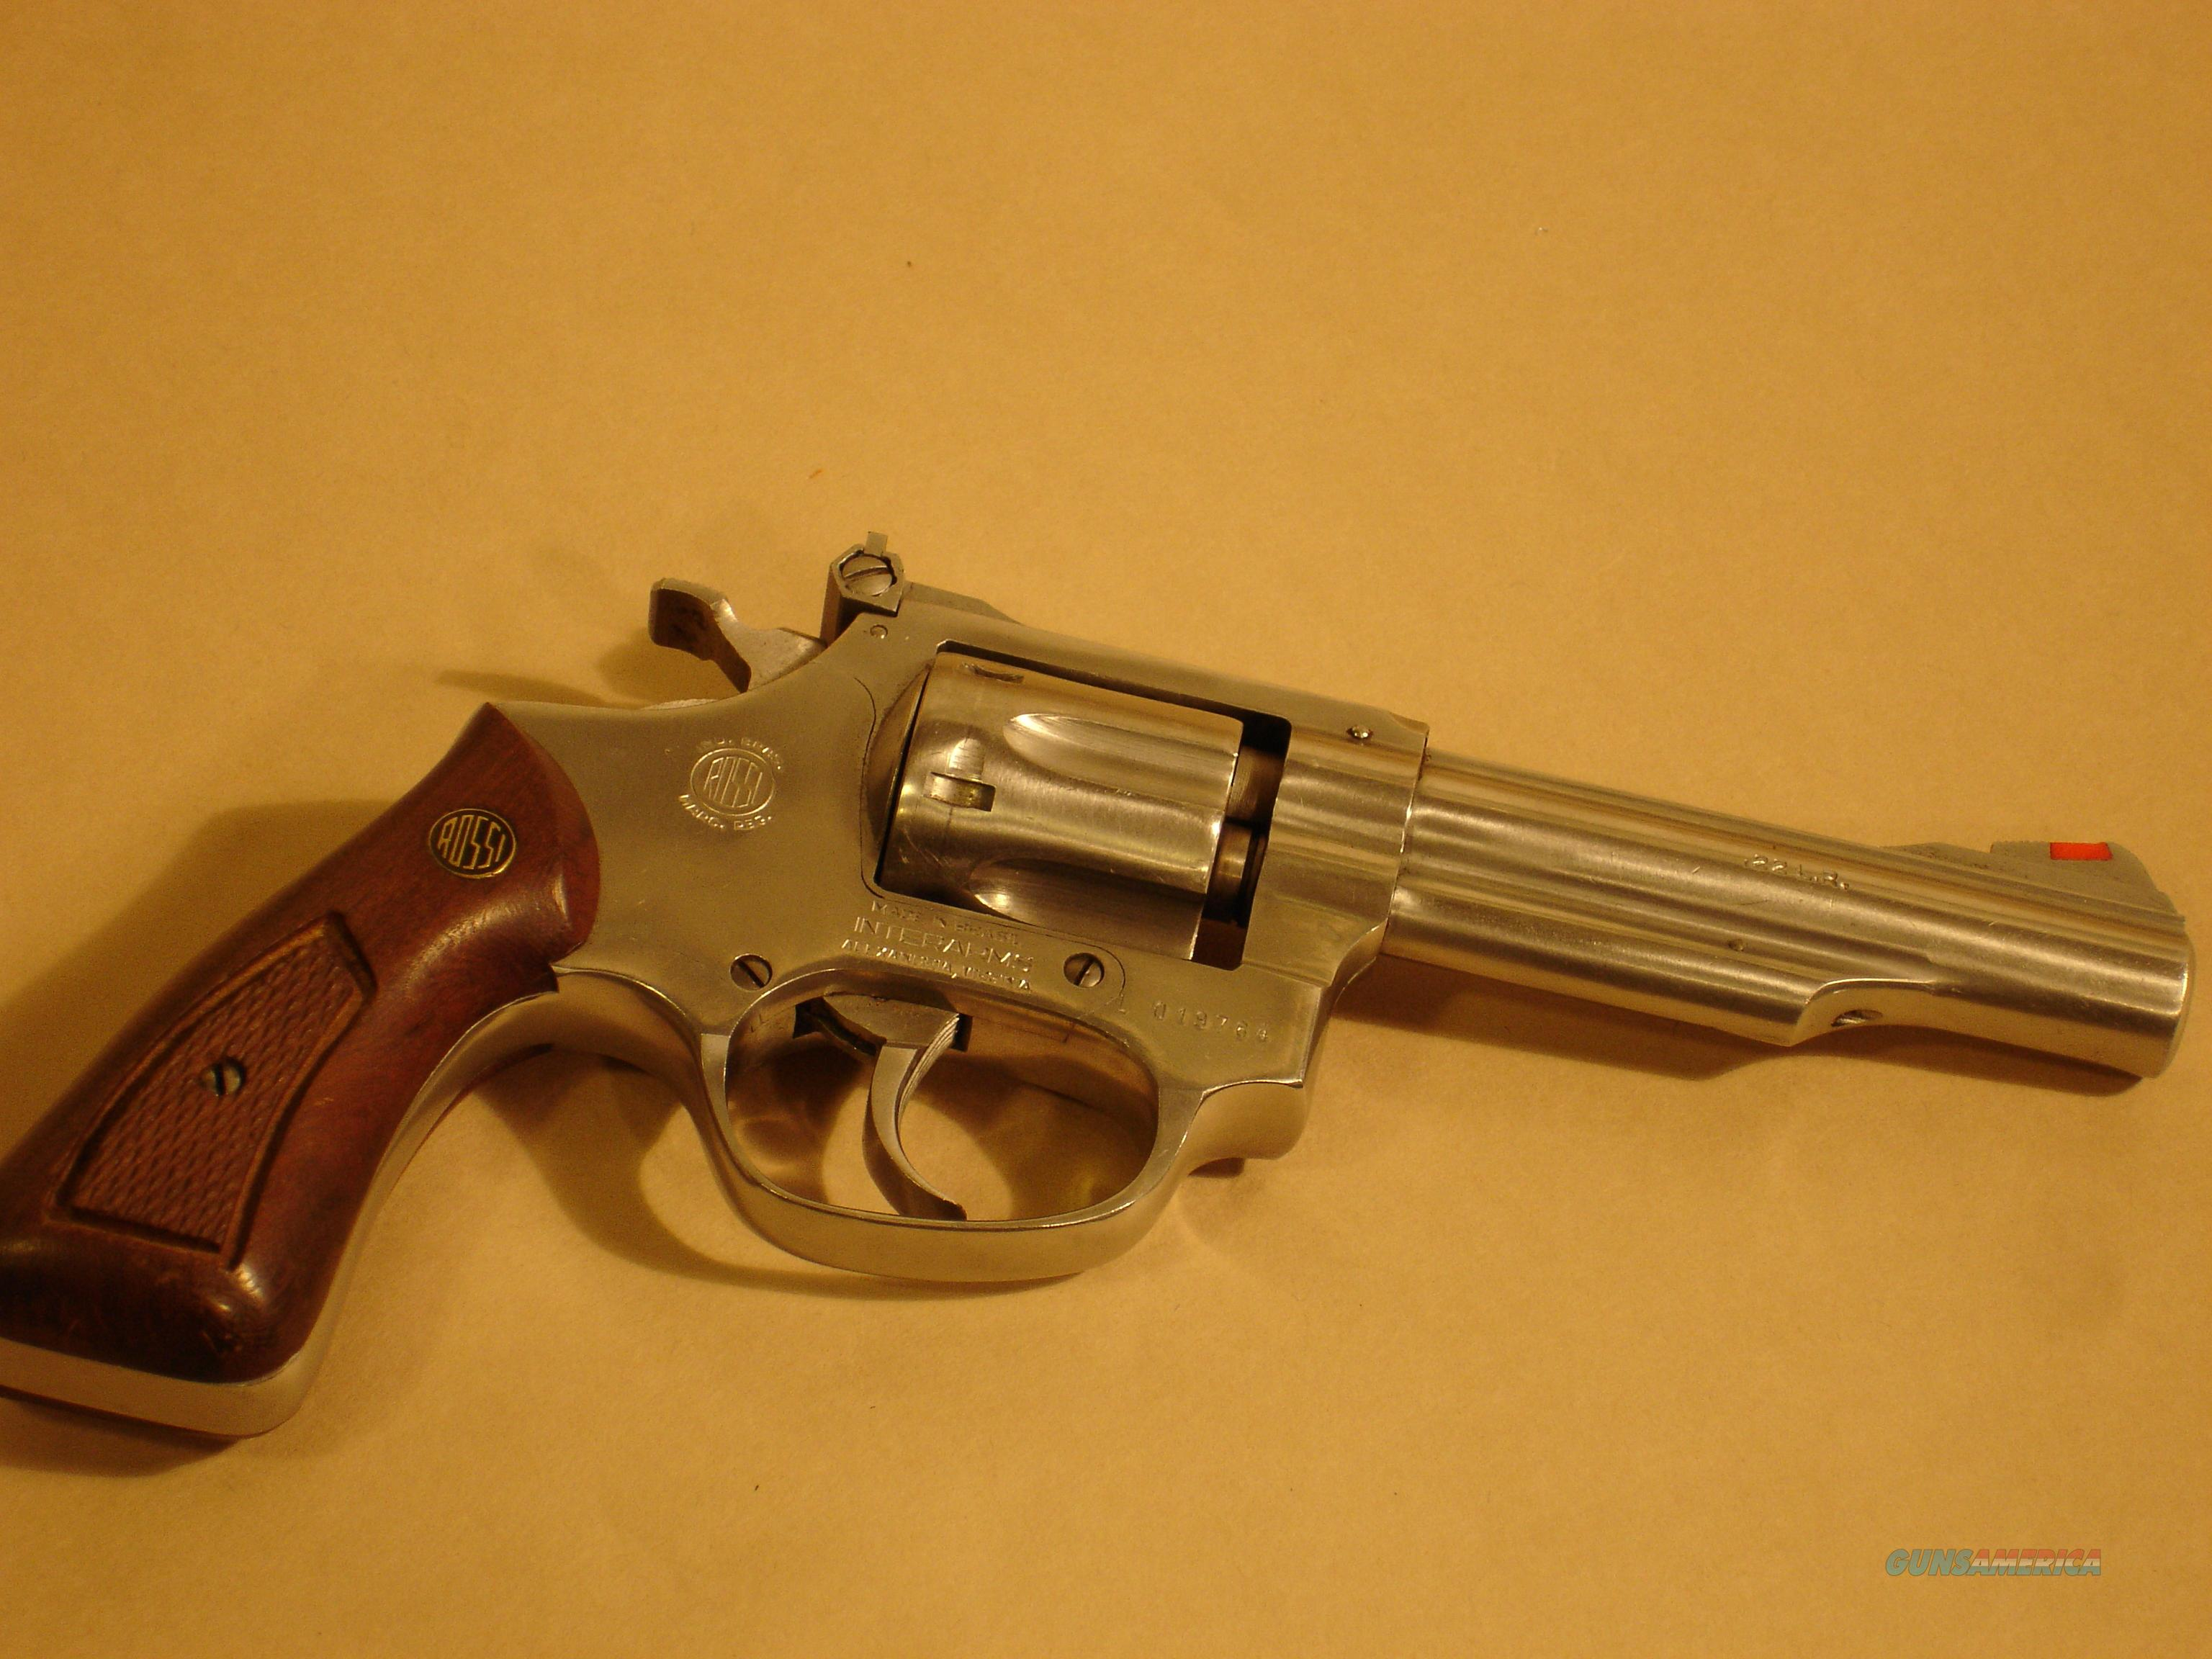 Rossi Revolver Model #511 4 inch StainlessSteel Excellent  Guns > Pistols > Rossi Revolvers